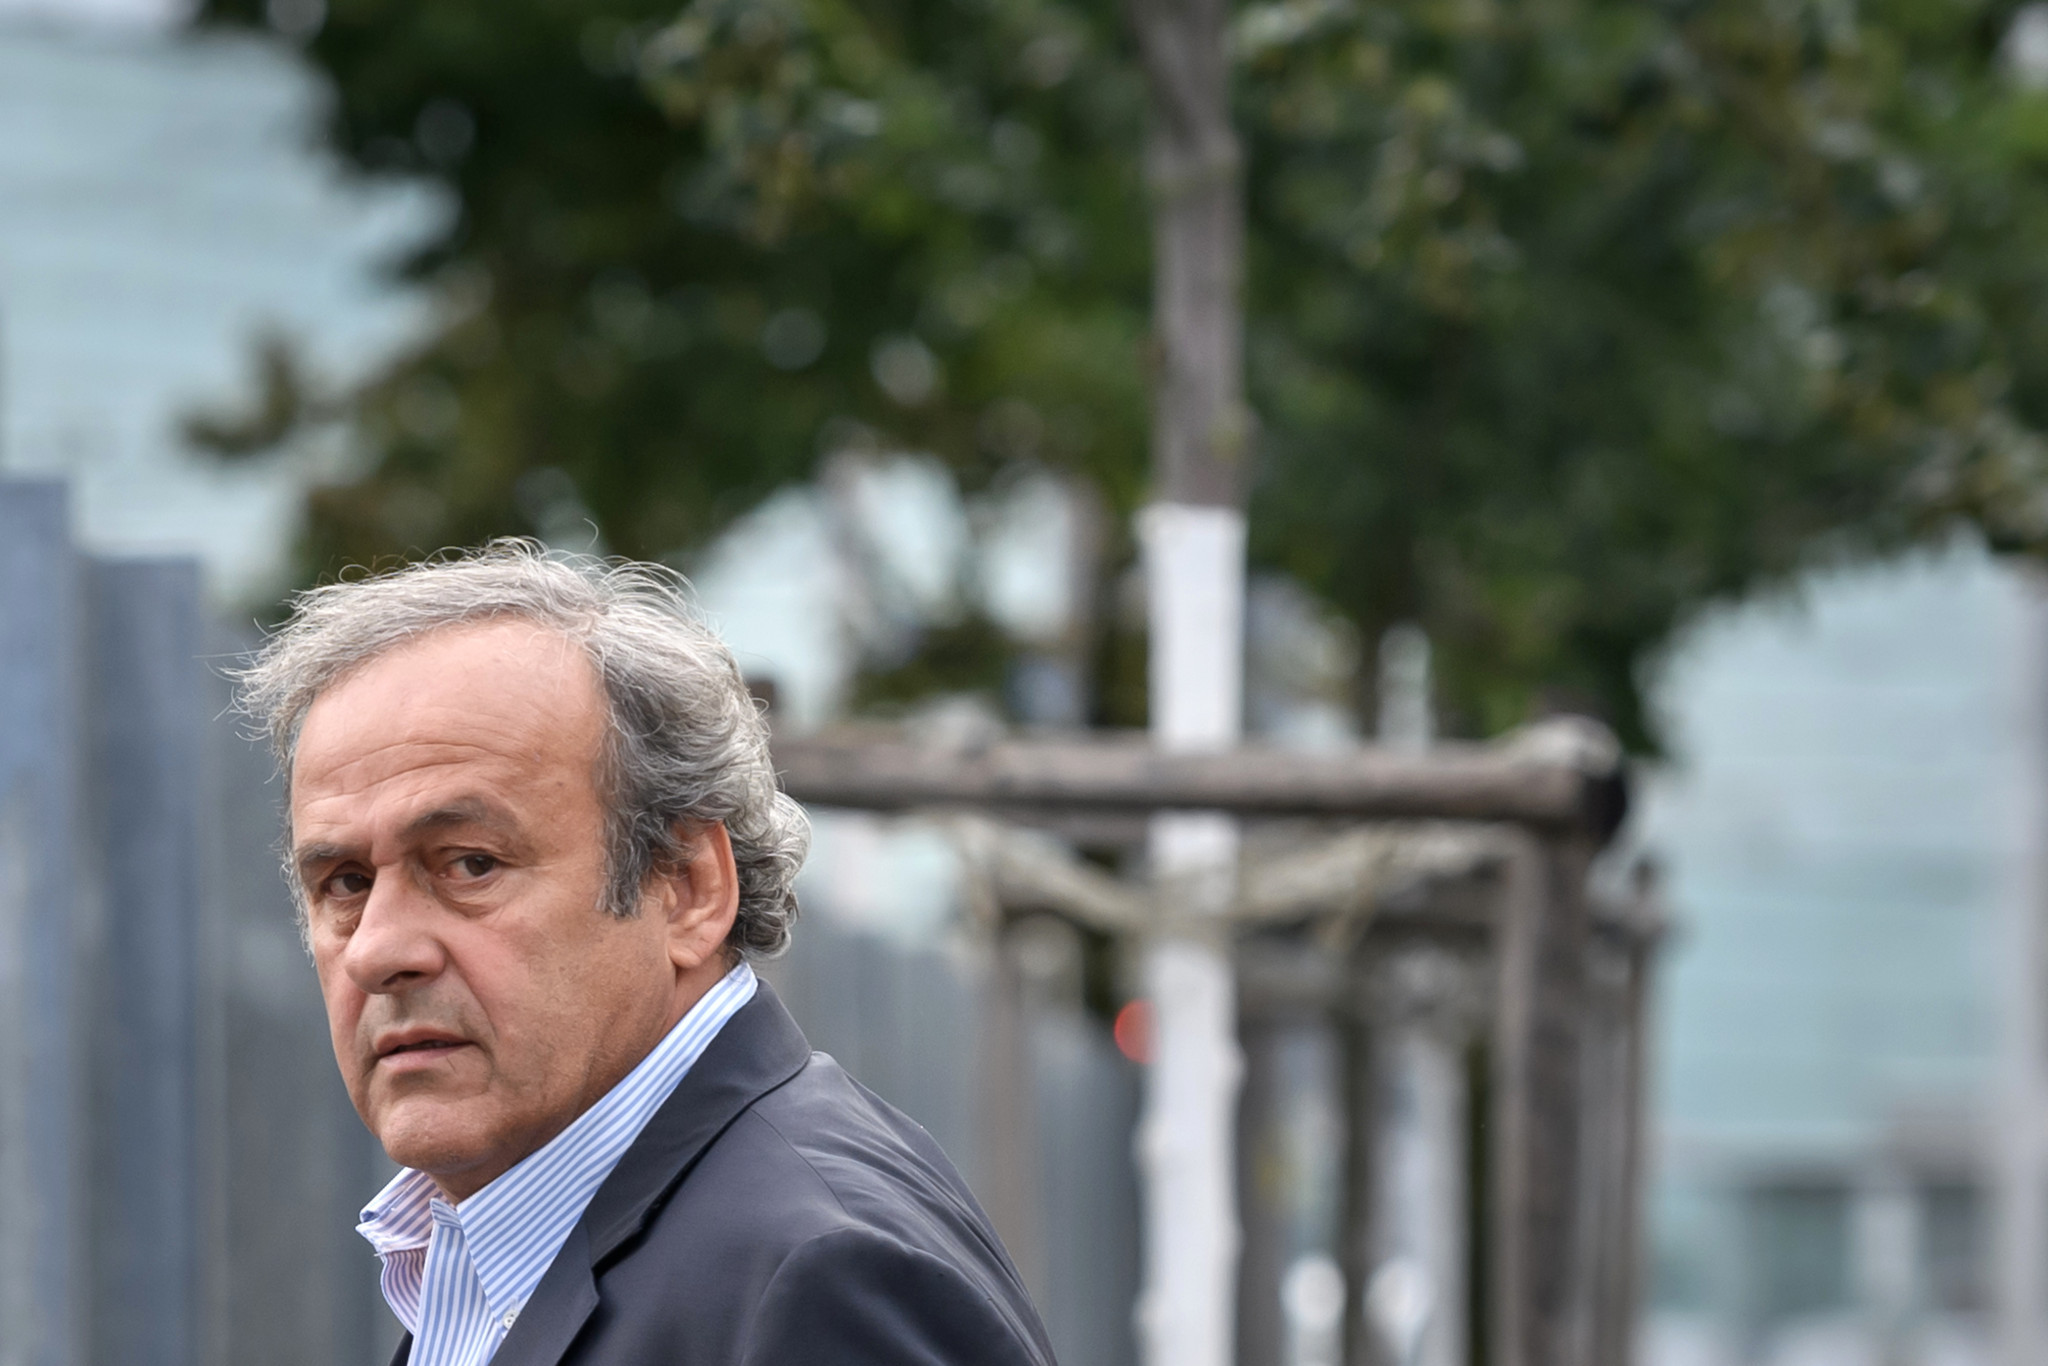 Michel Platini attended questioning back in August ©Getty Images